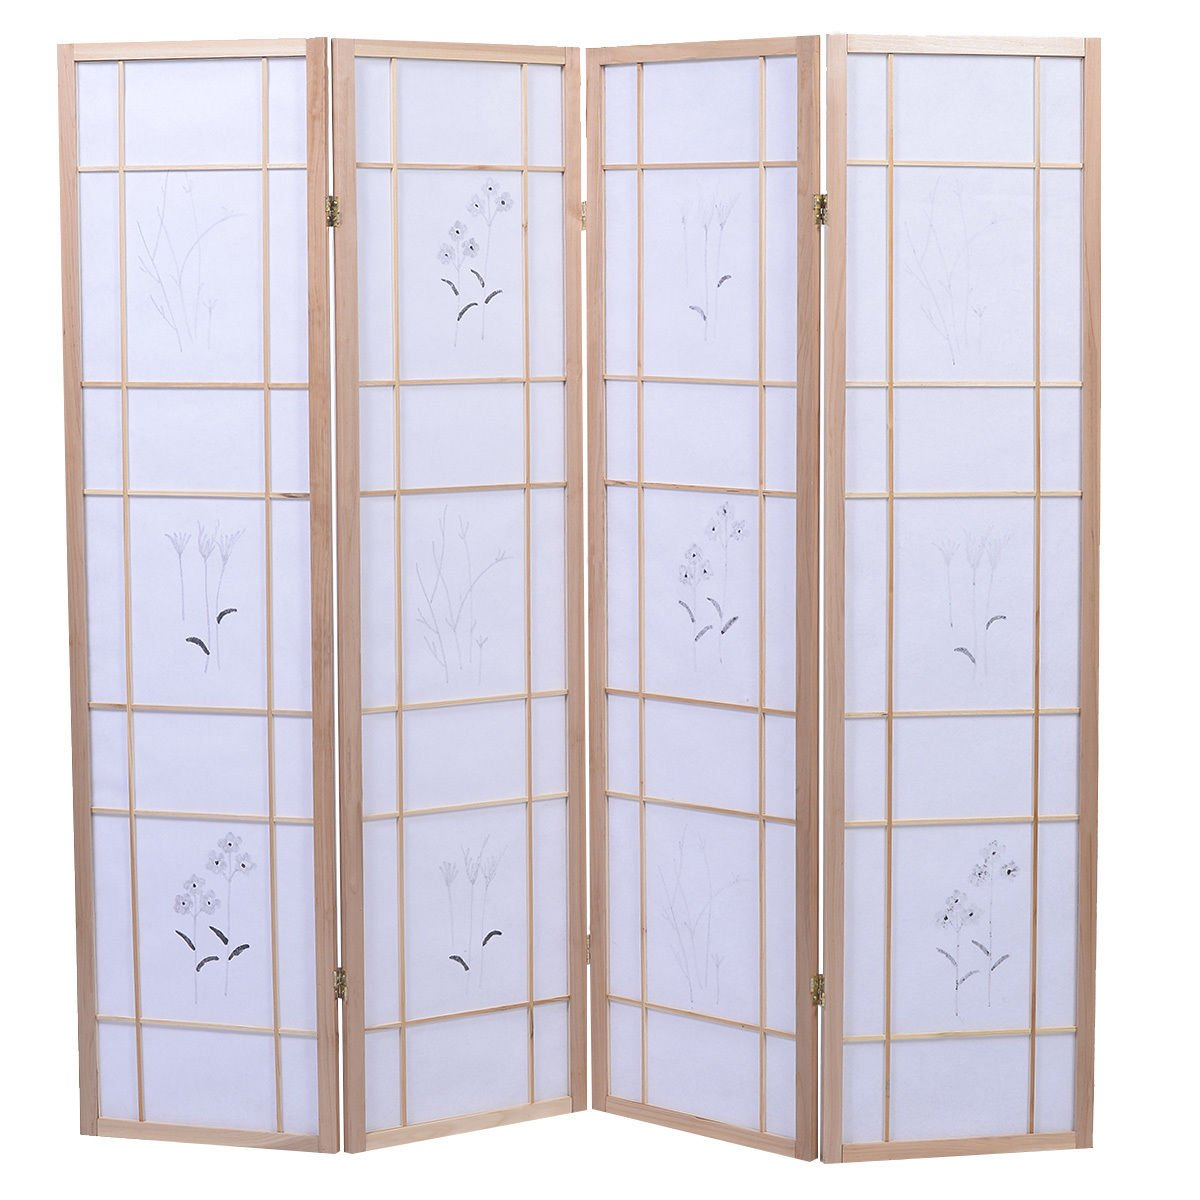 4 Panel Flowered Room Divider Screen Style Shoji Solid New Wood Natural